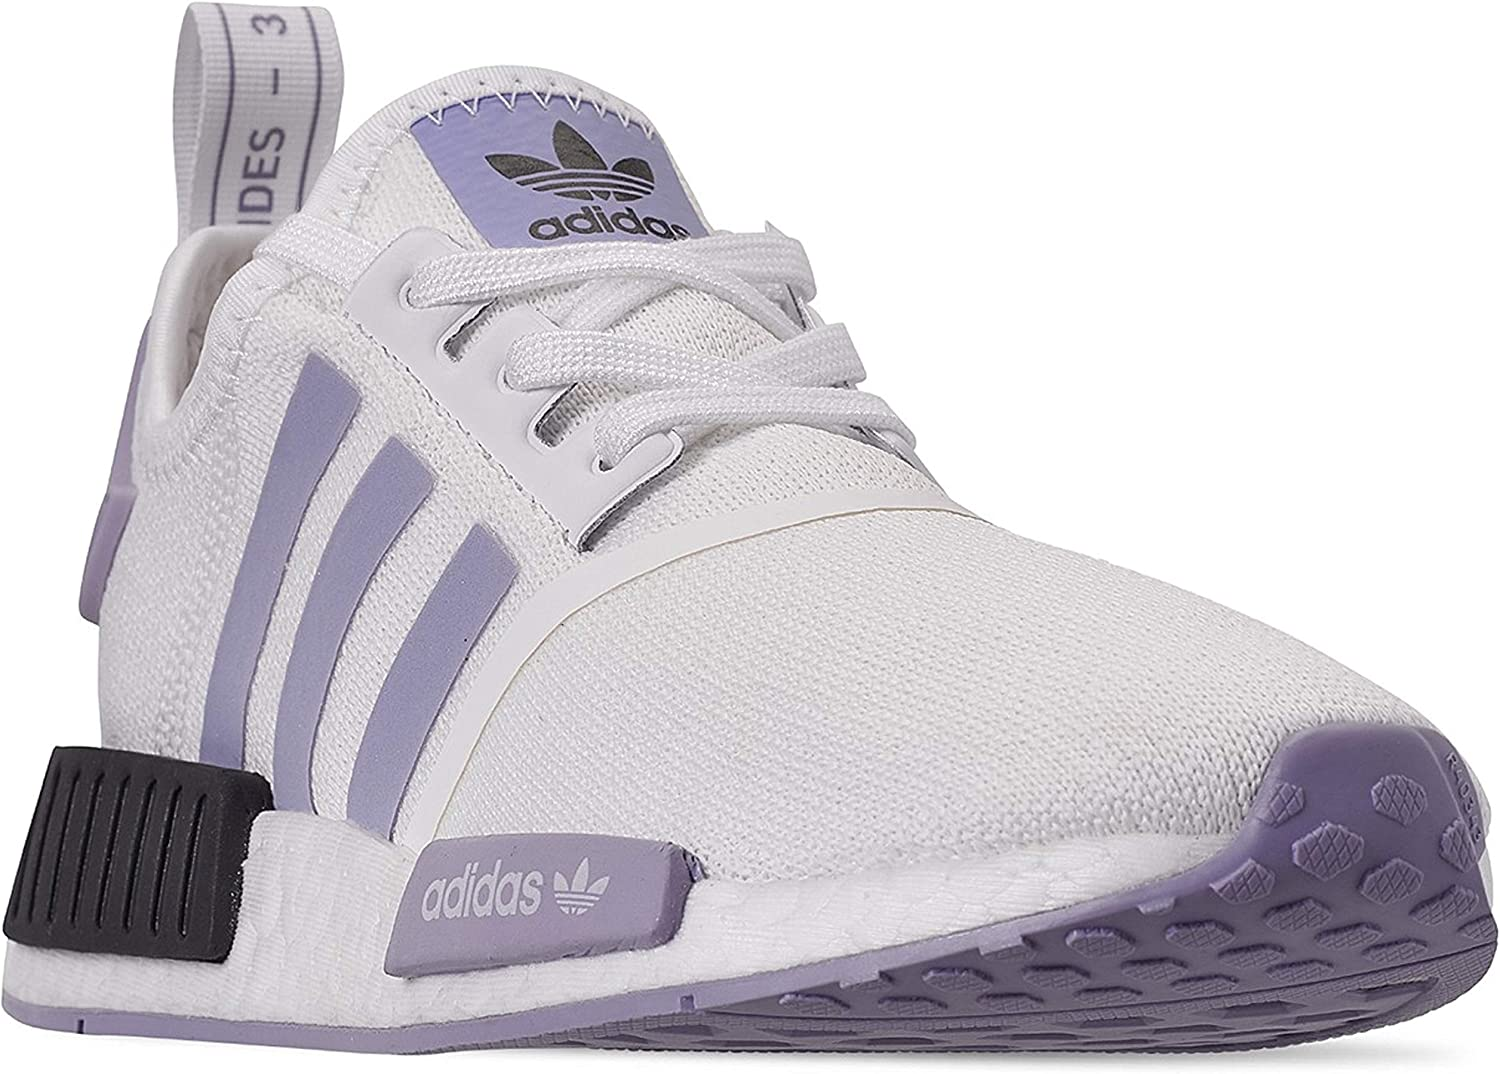 Adidas NMD_R1 W, raw pink/vapour pink/ftwr white Cloud White / Dust Purple / Grey Six